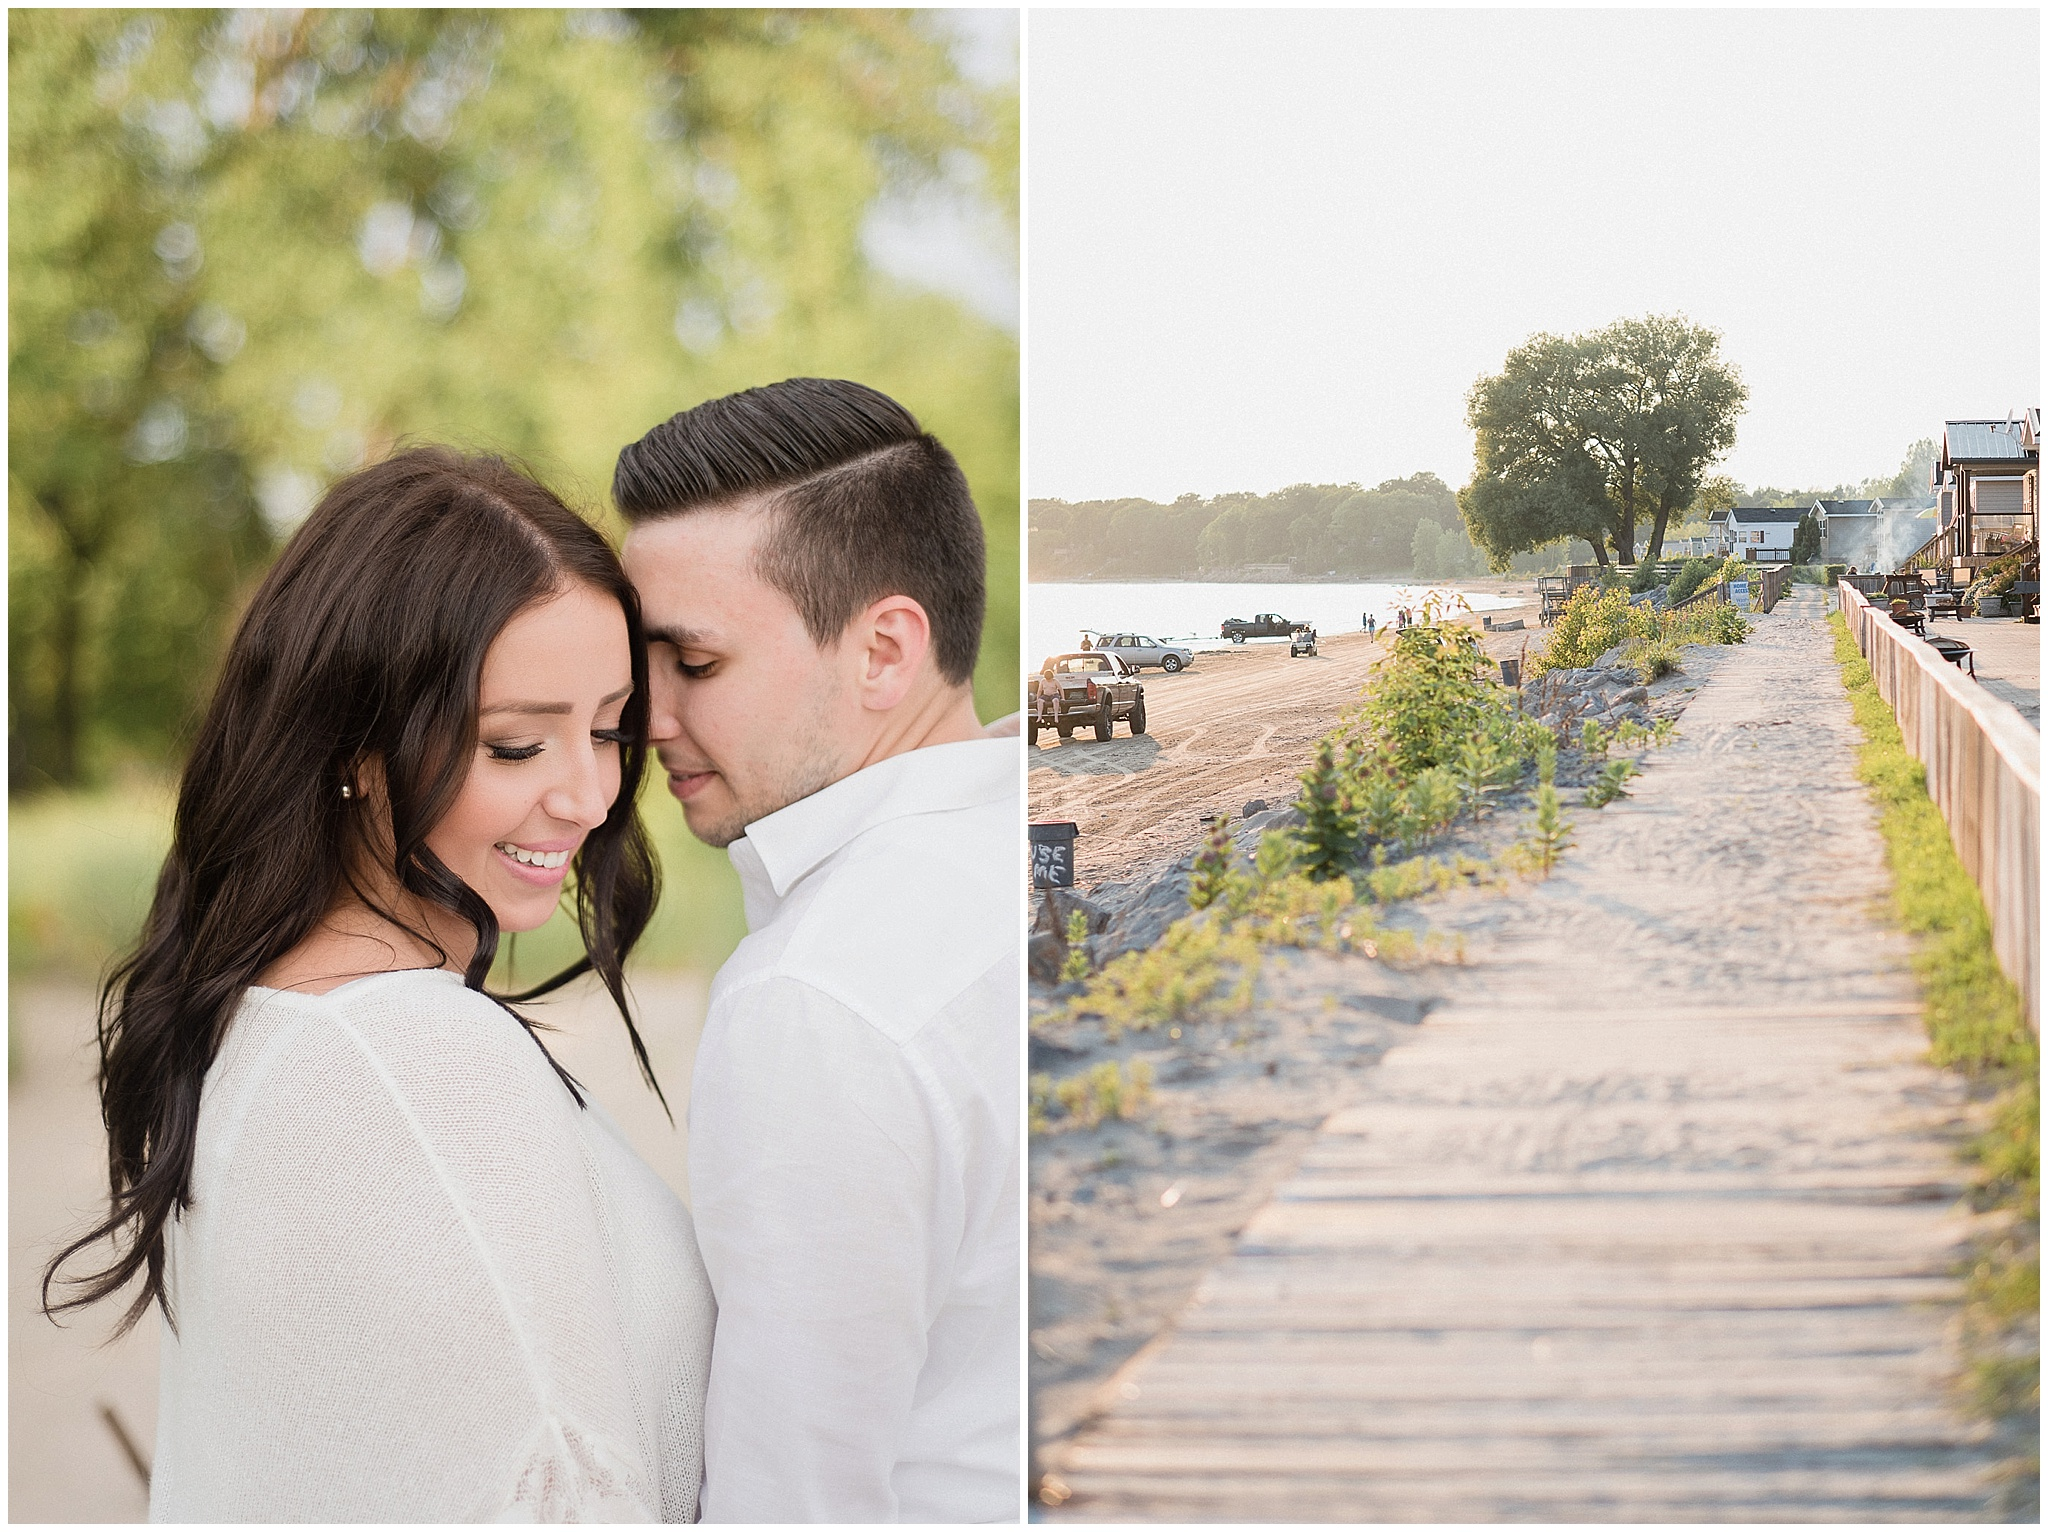 Sherkston Shores summertime beach engagement session photographed by Jenn Kavanagh Photography